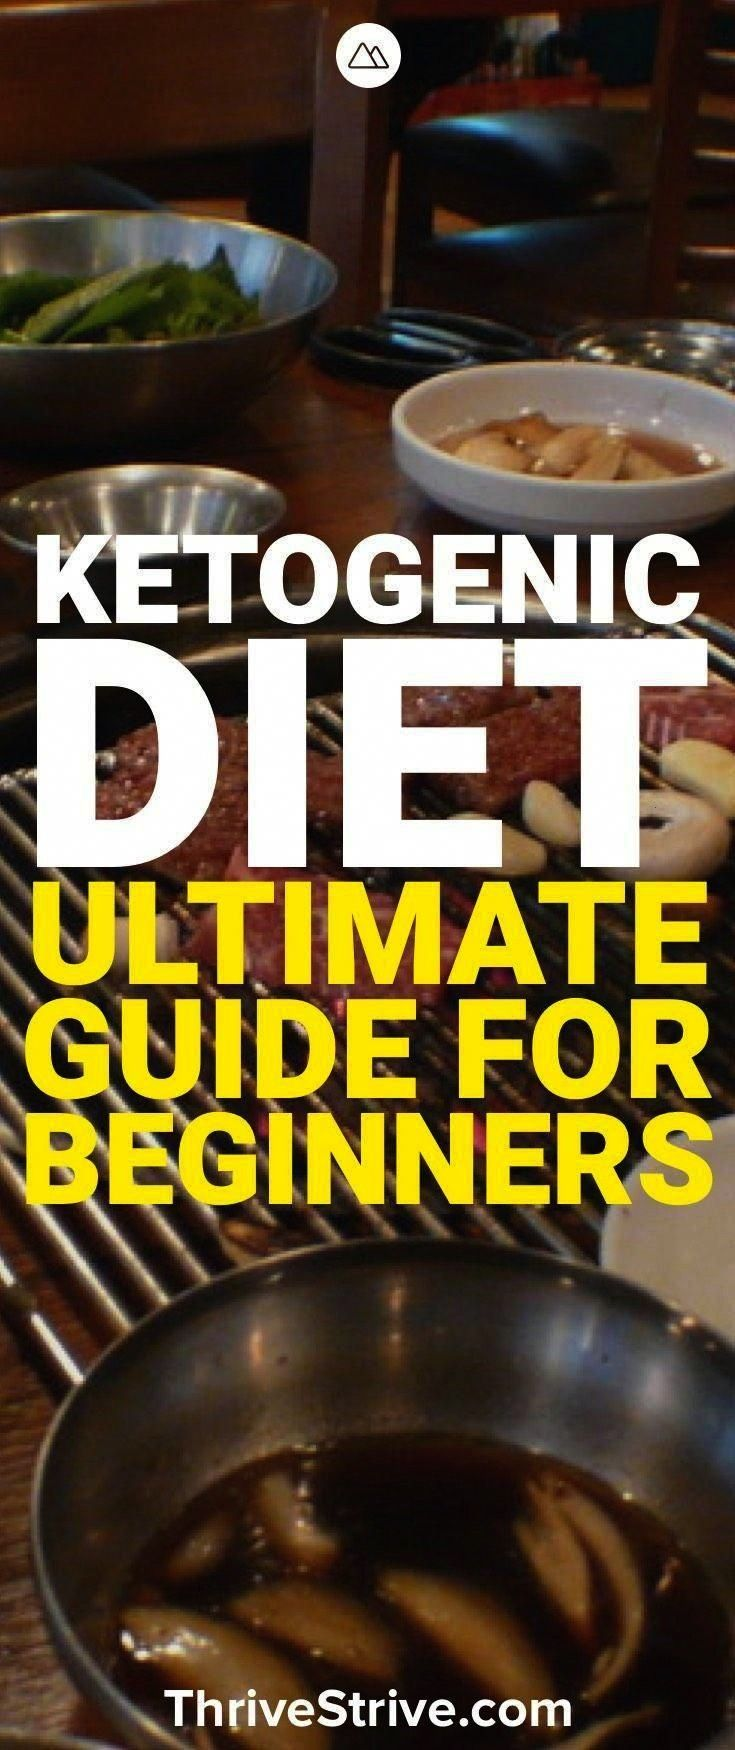 #ketogenicdietexplained #3dayketogenicdiet #ketogenic #explain #ketosis #guide #diet #what #help #will #this #and #why #the #isWhat is the ketogenic diet? This guide will help to explain ketosis and why the ..., What is the ketogenic diet? This guide will help to explain ketosis and why the ...,   Peach Dump Cake Try with a gluten-free cake mix.  This Raspberry Cheesecake Keto Ice Cream is to Die For! - Hip2Keto  These pan fried cinnamon bananas are so easy to make and taste SO GOOD! They...